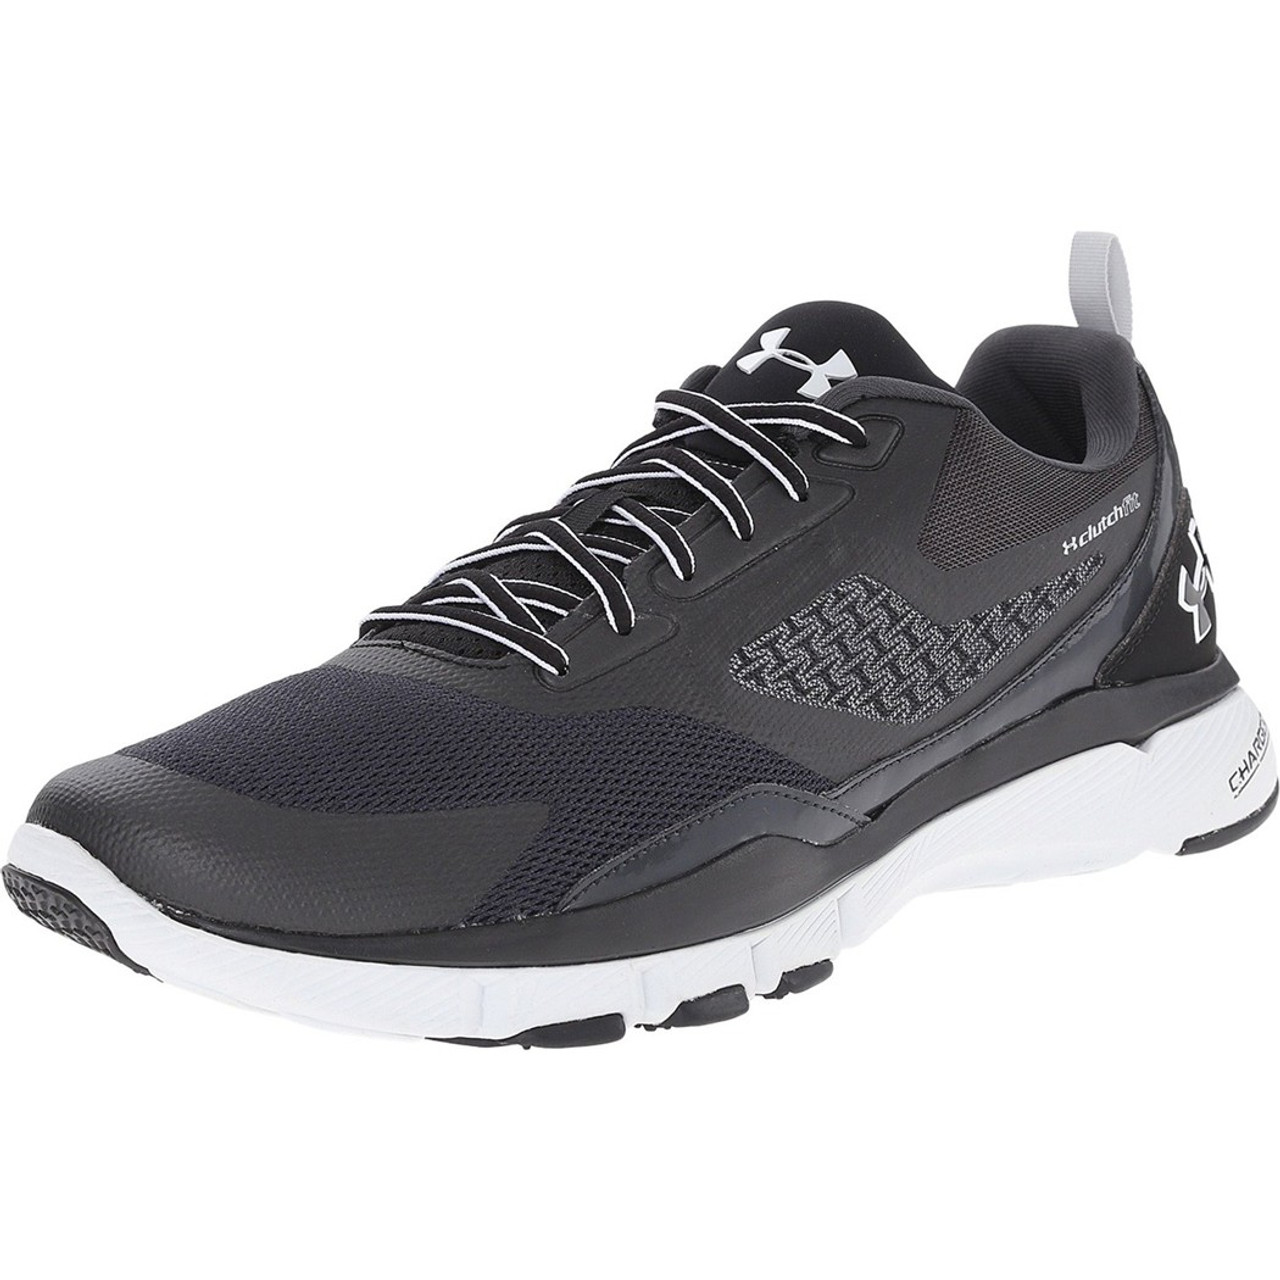 Under Armour Shoes - Charged One TR - Anthracite White - Surf and Dirt 977996739596